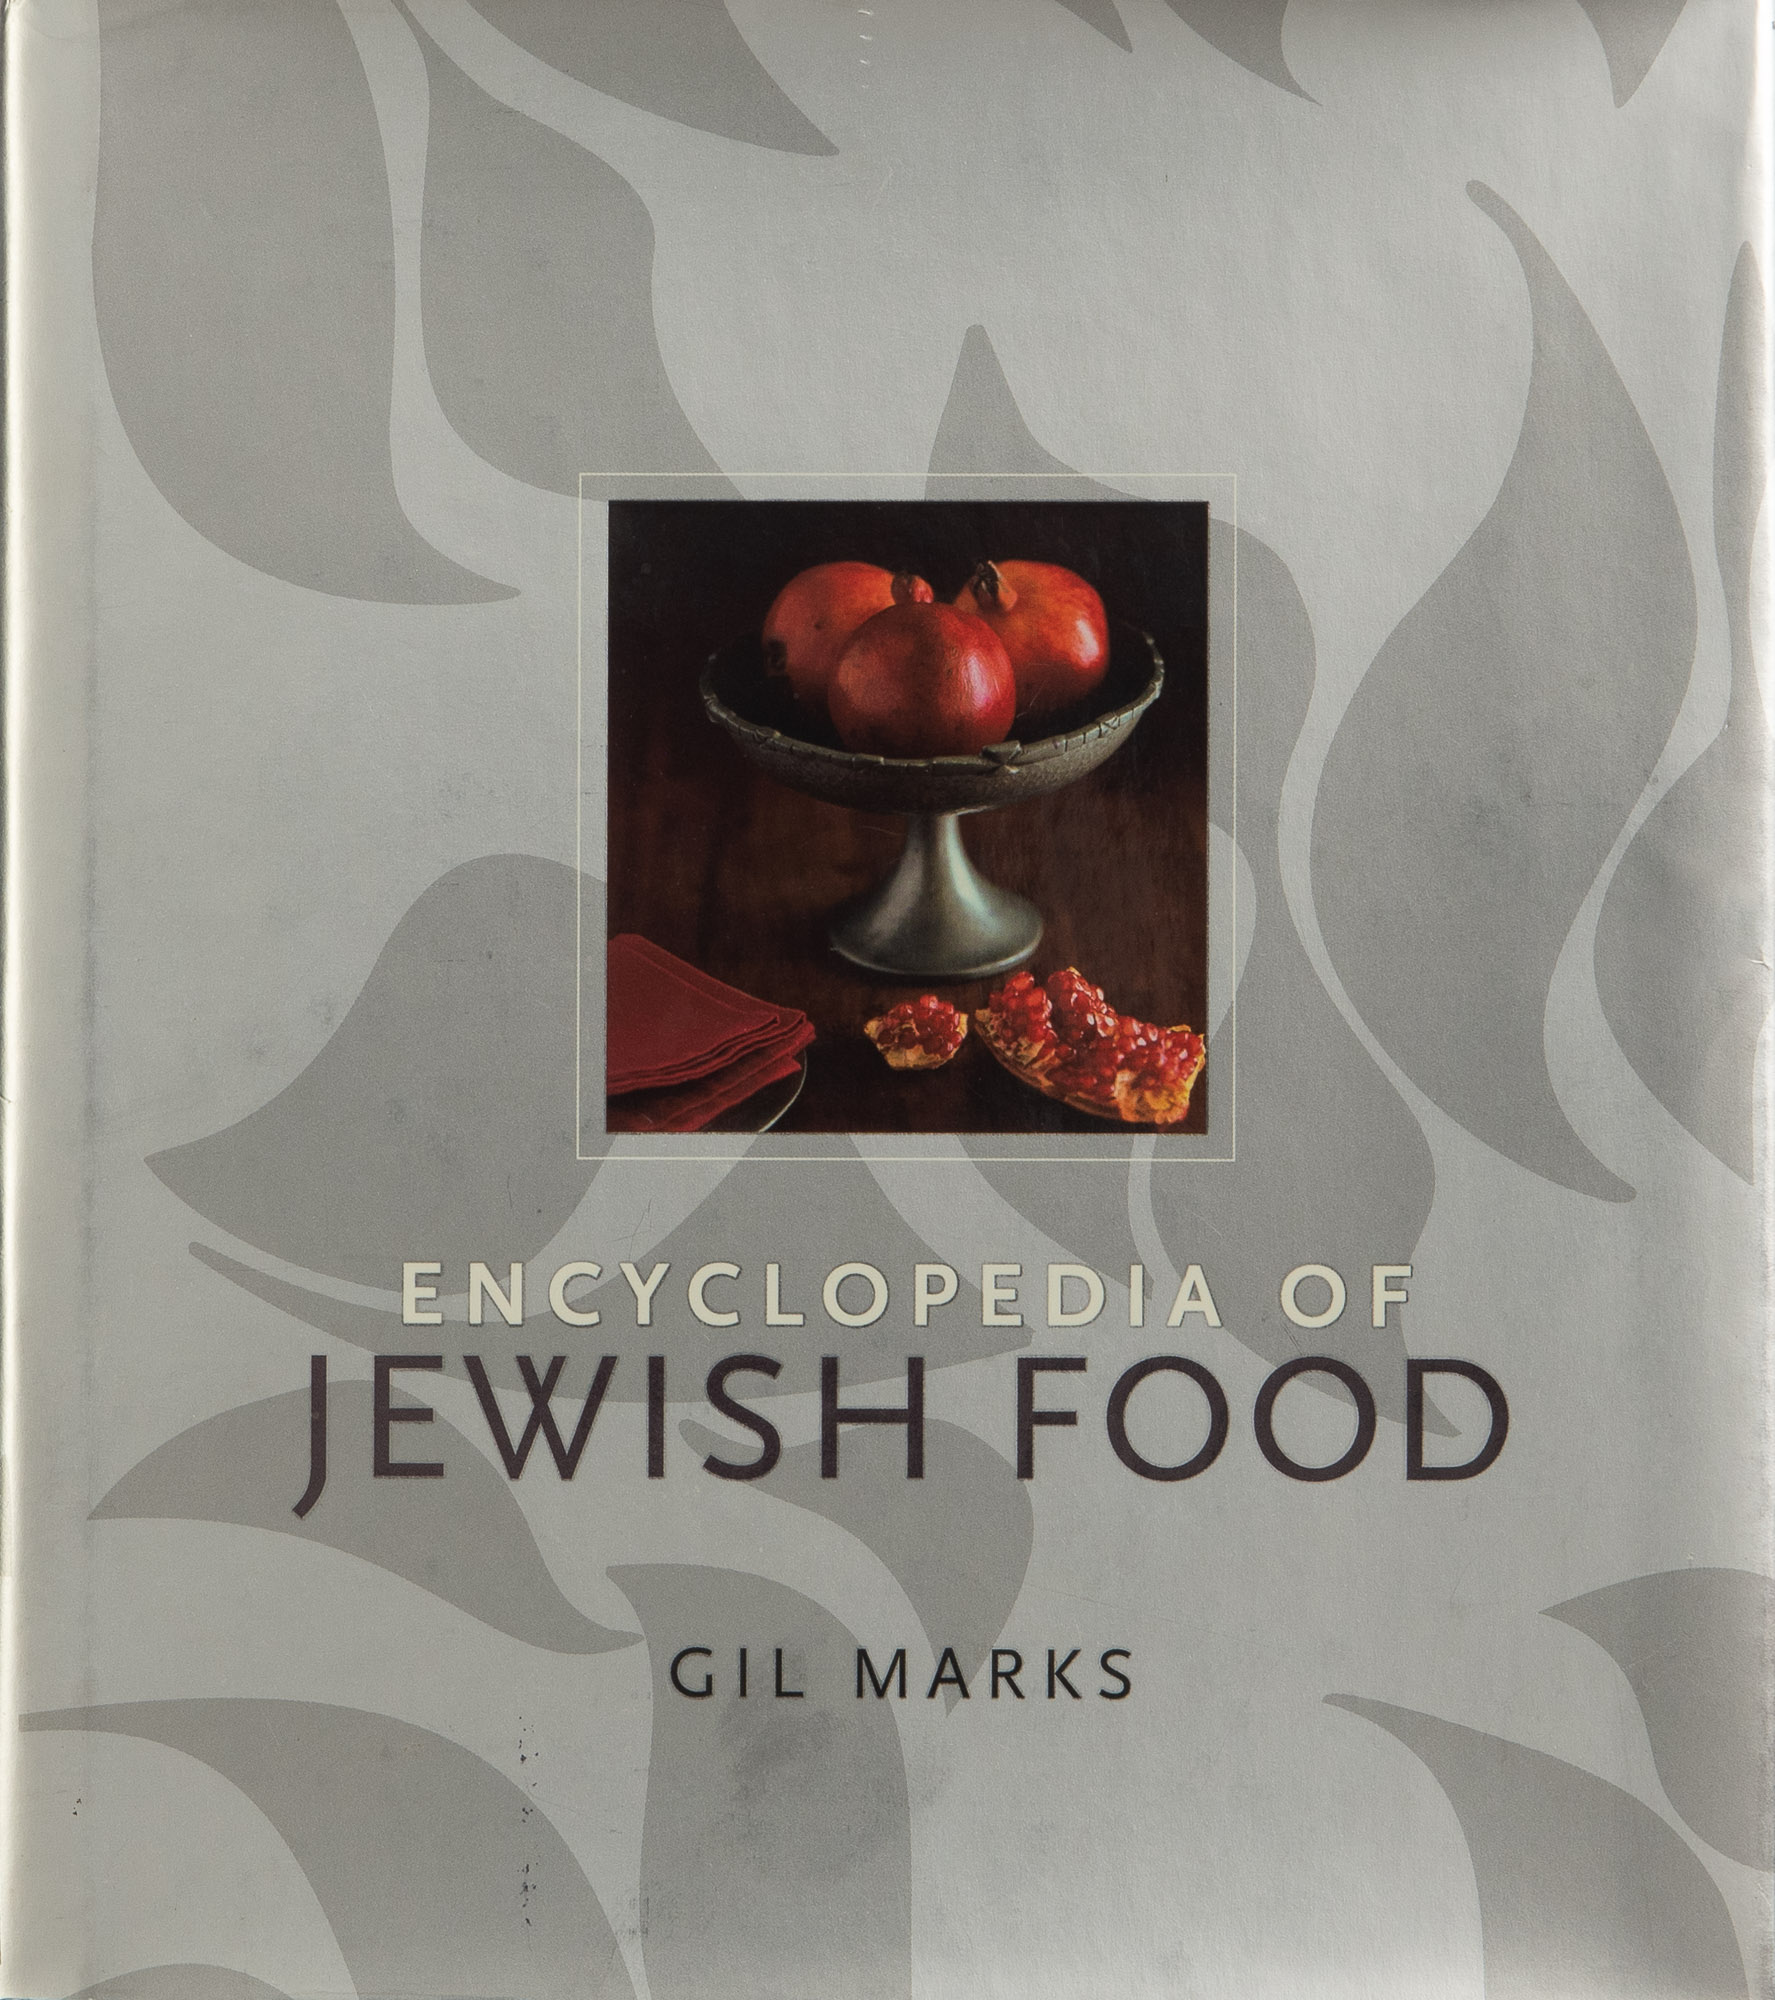 The cover of the Encyclopedia of Jewish Food by Gil Marks